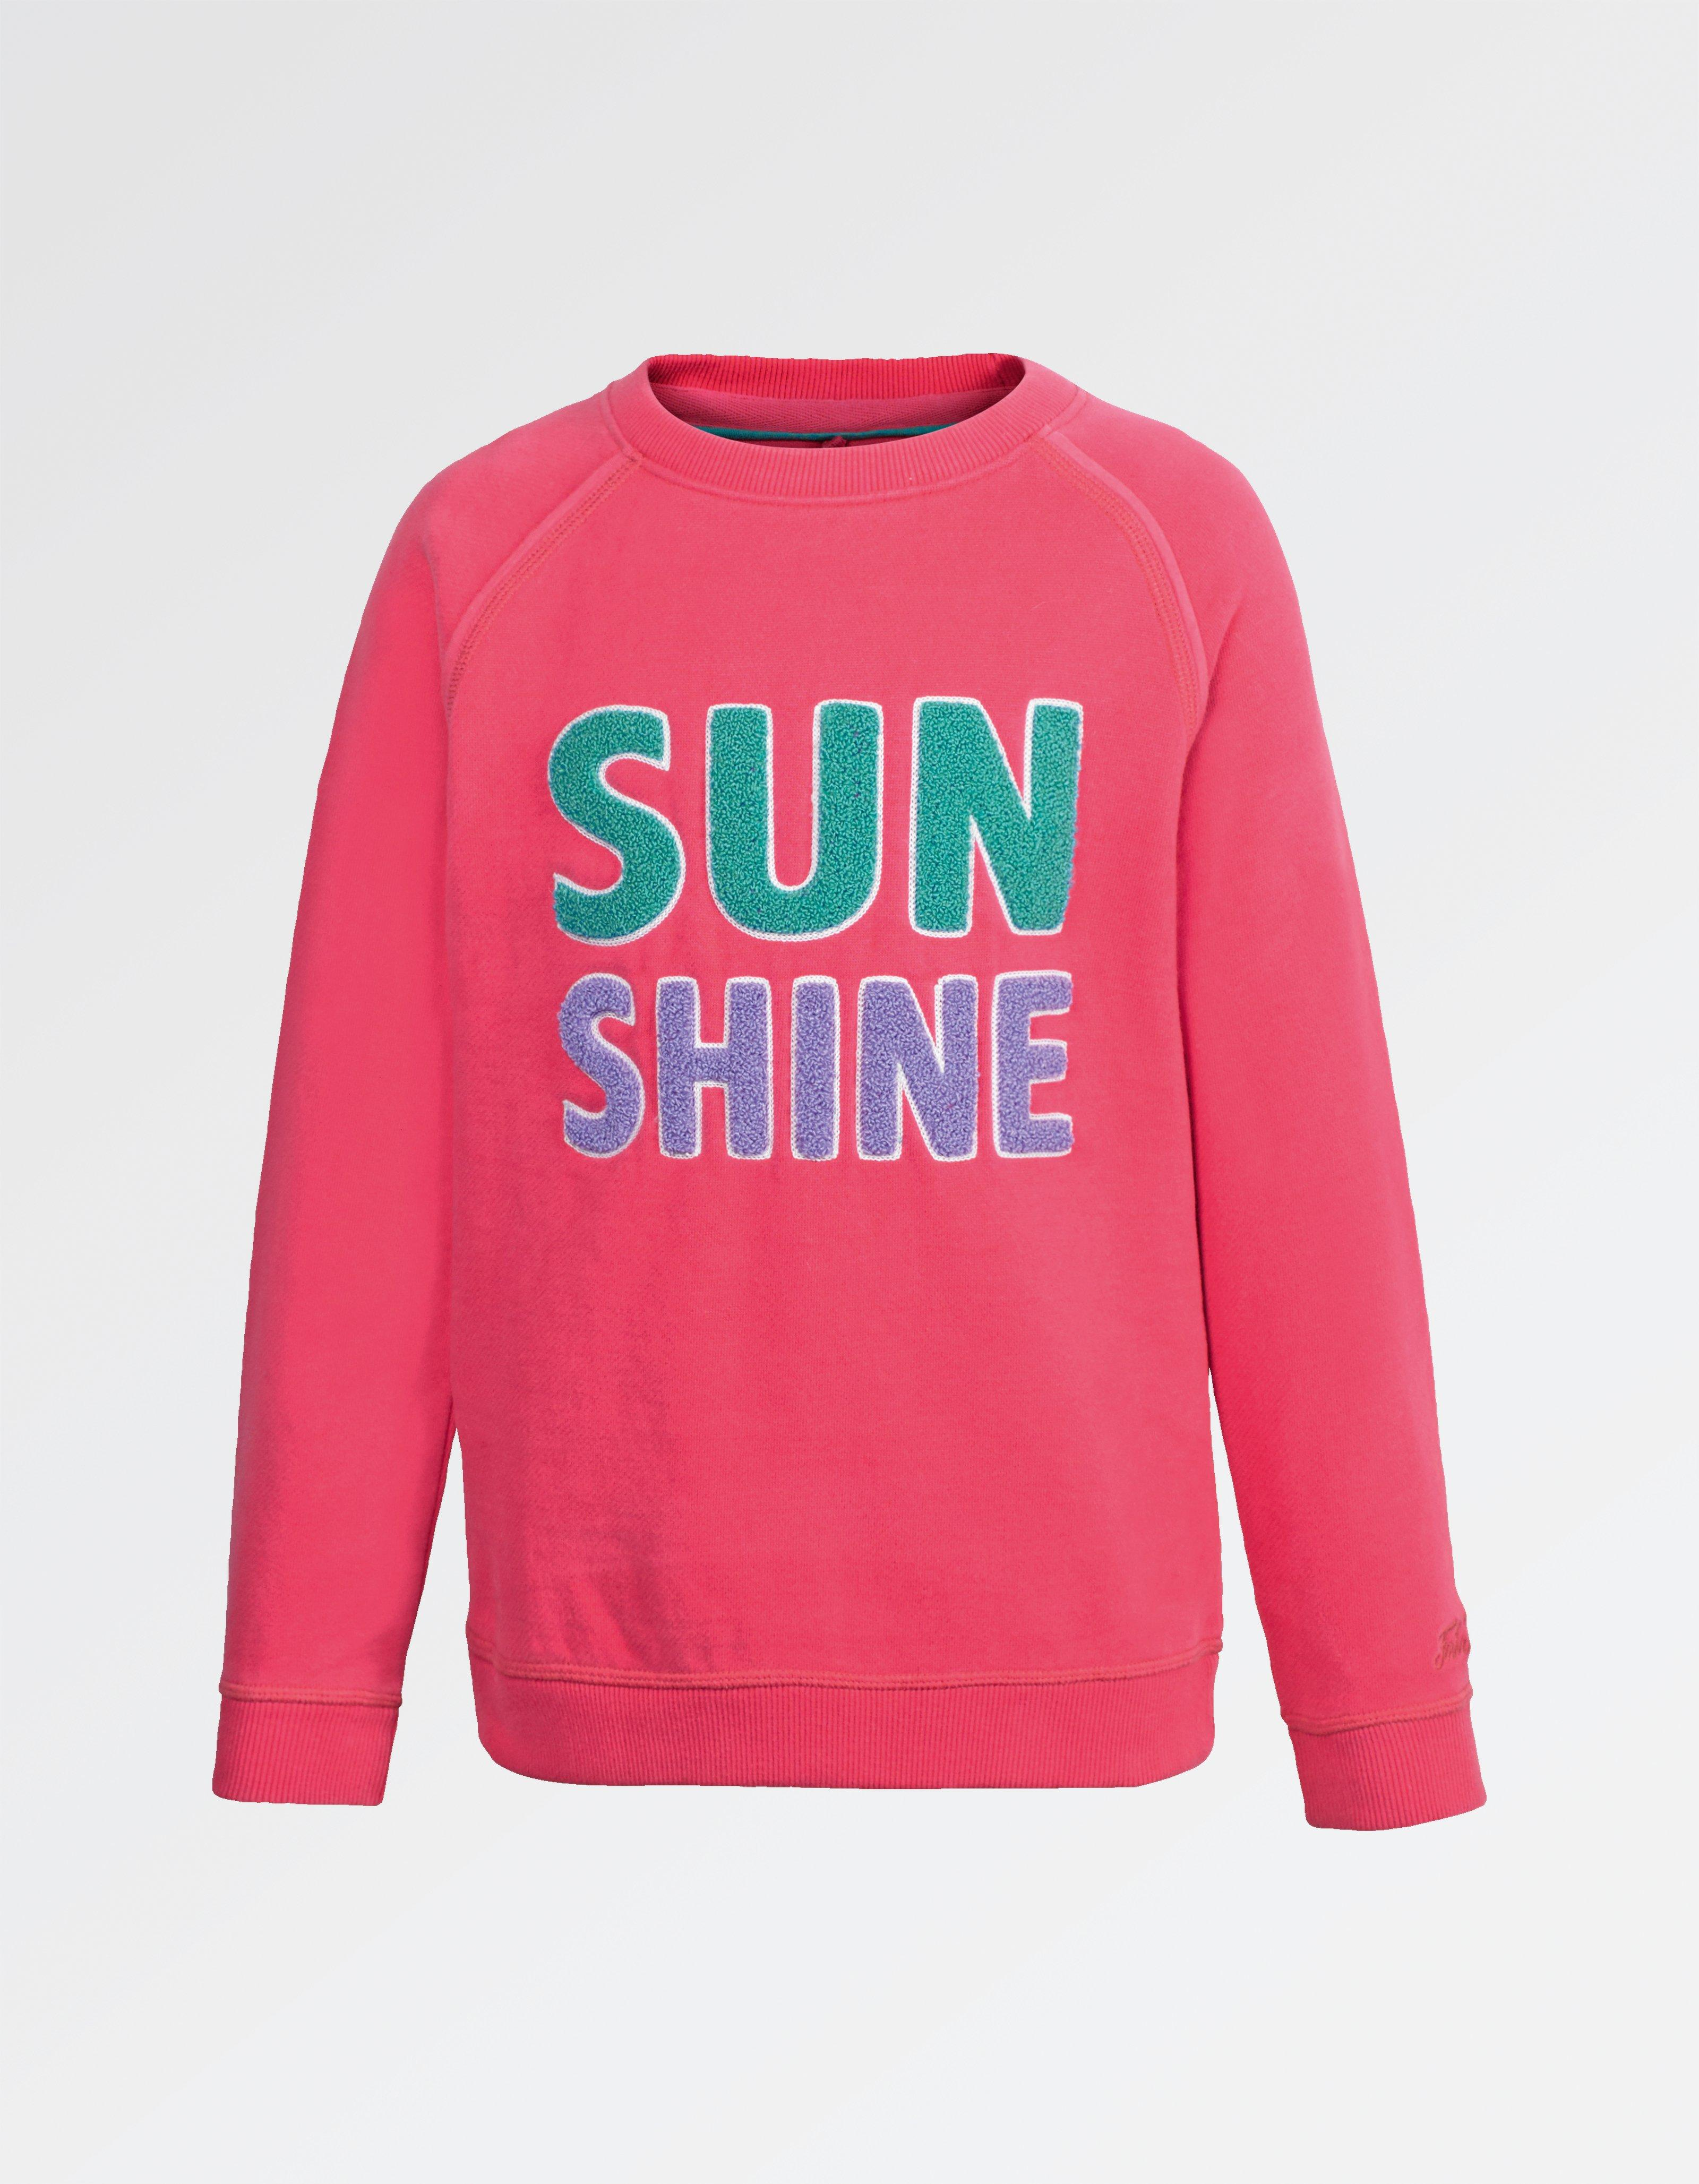 Sunshine Crew Neck Sweatshirt